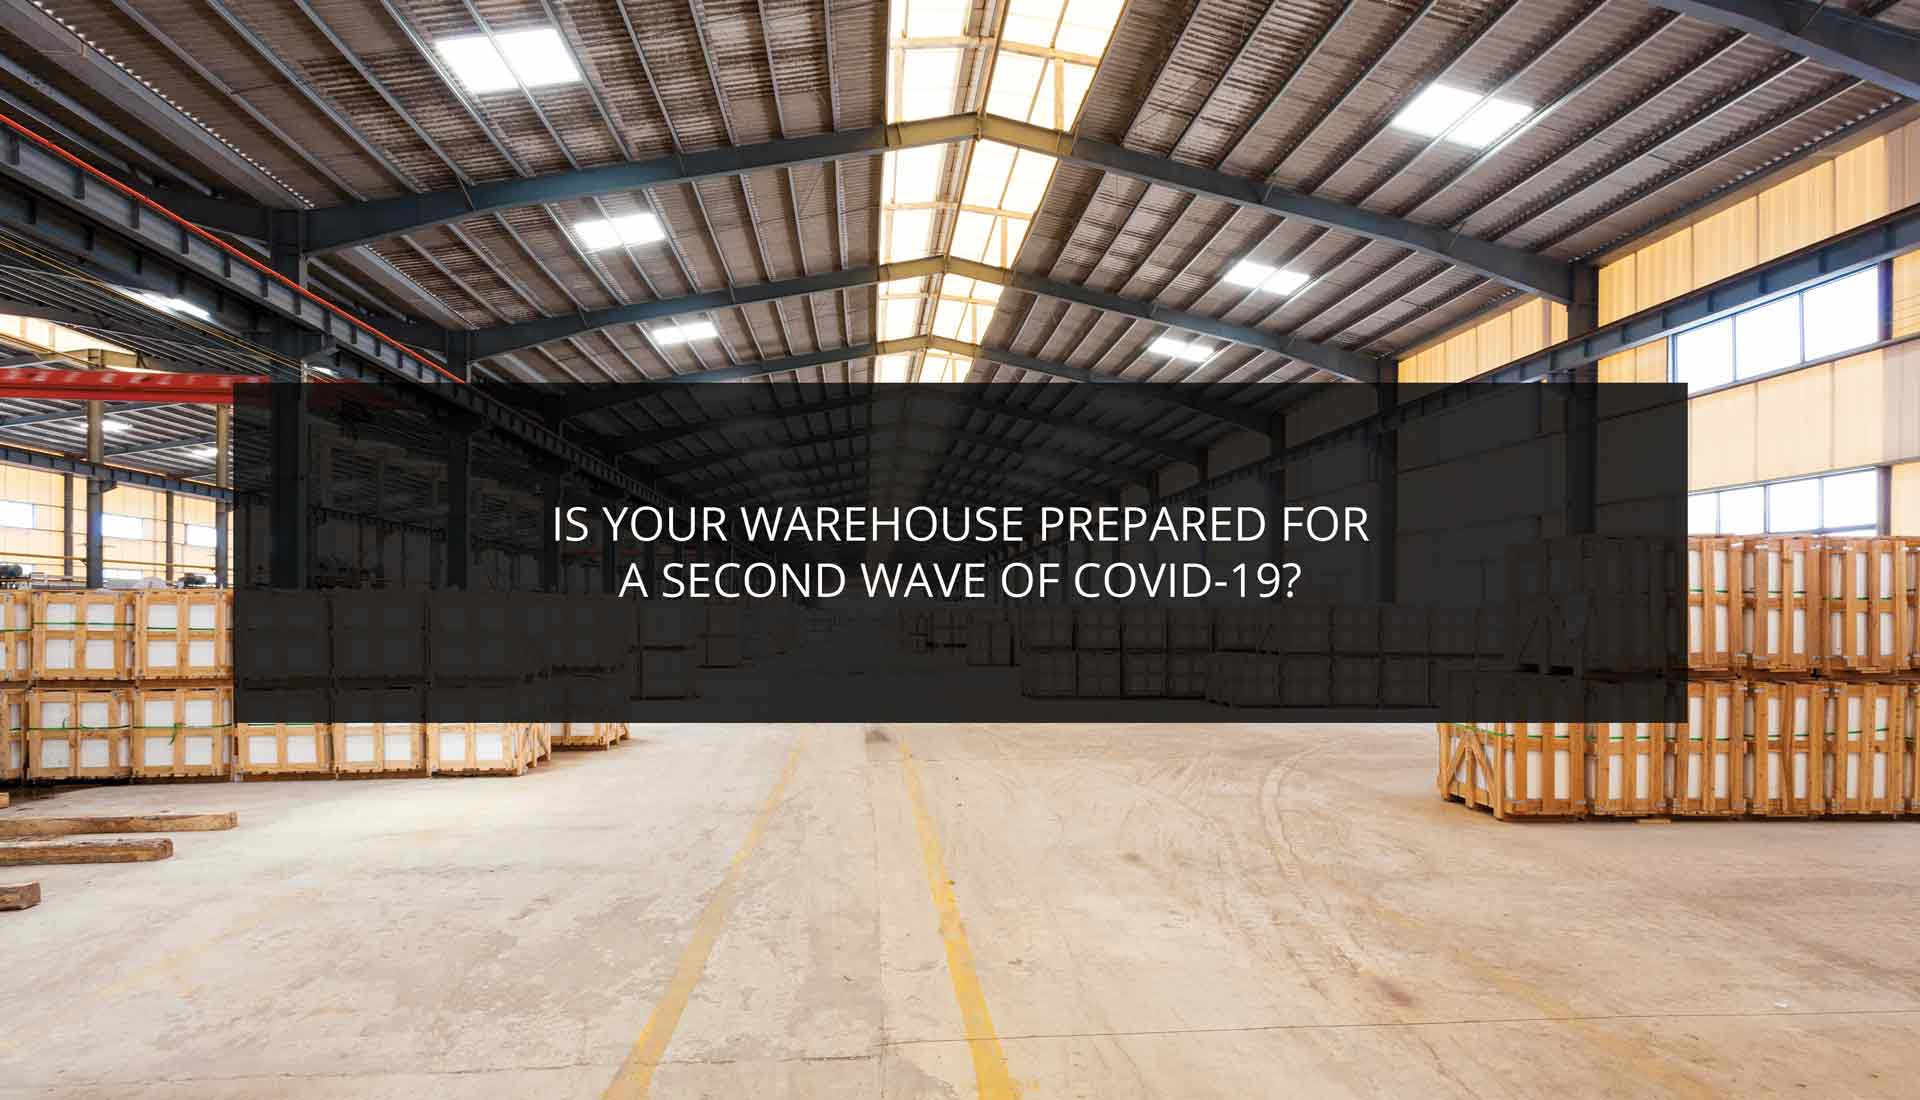 Is Your Warehouse Prepared for a Second Wave of COVID-19?